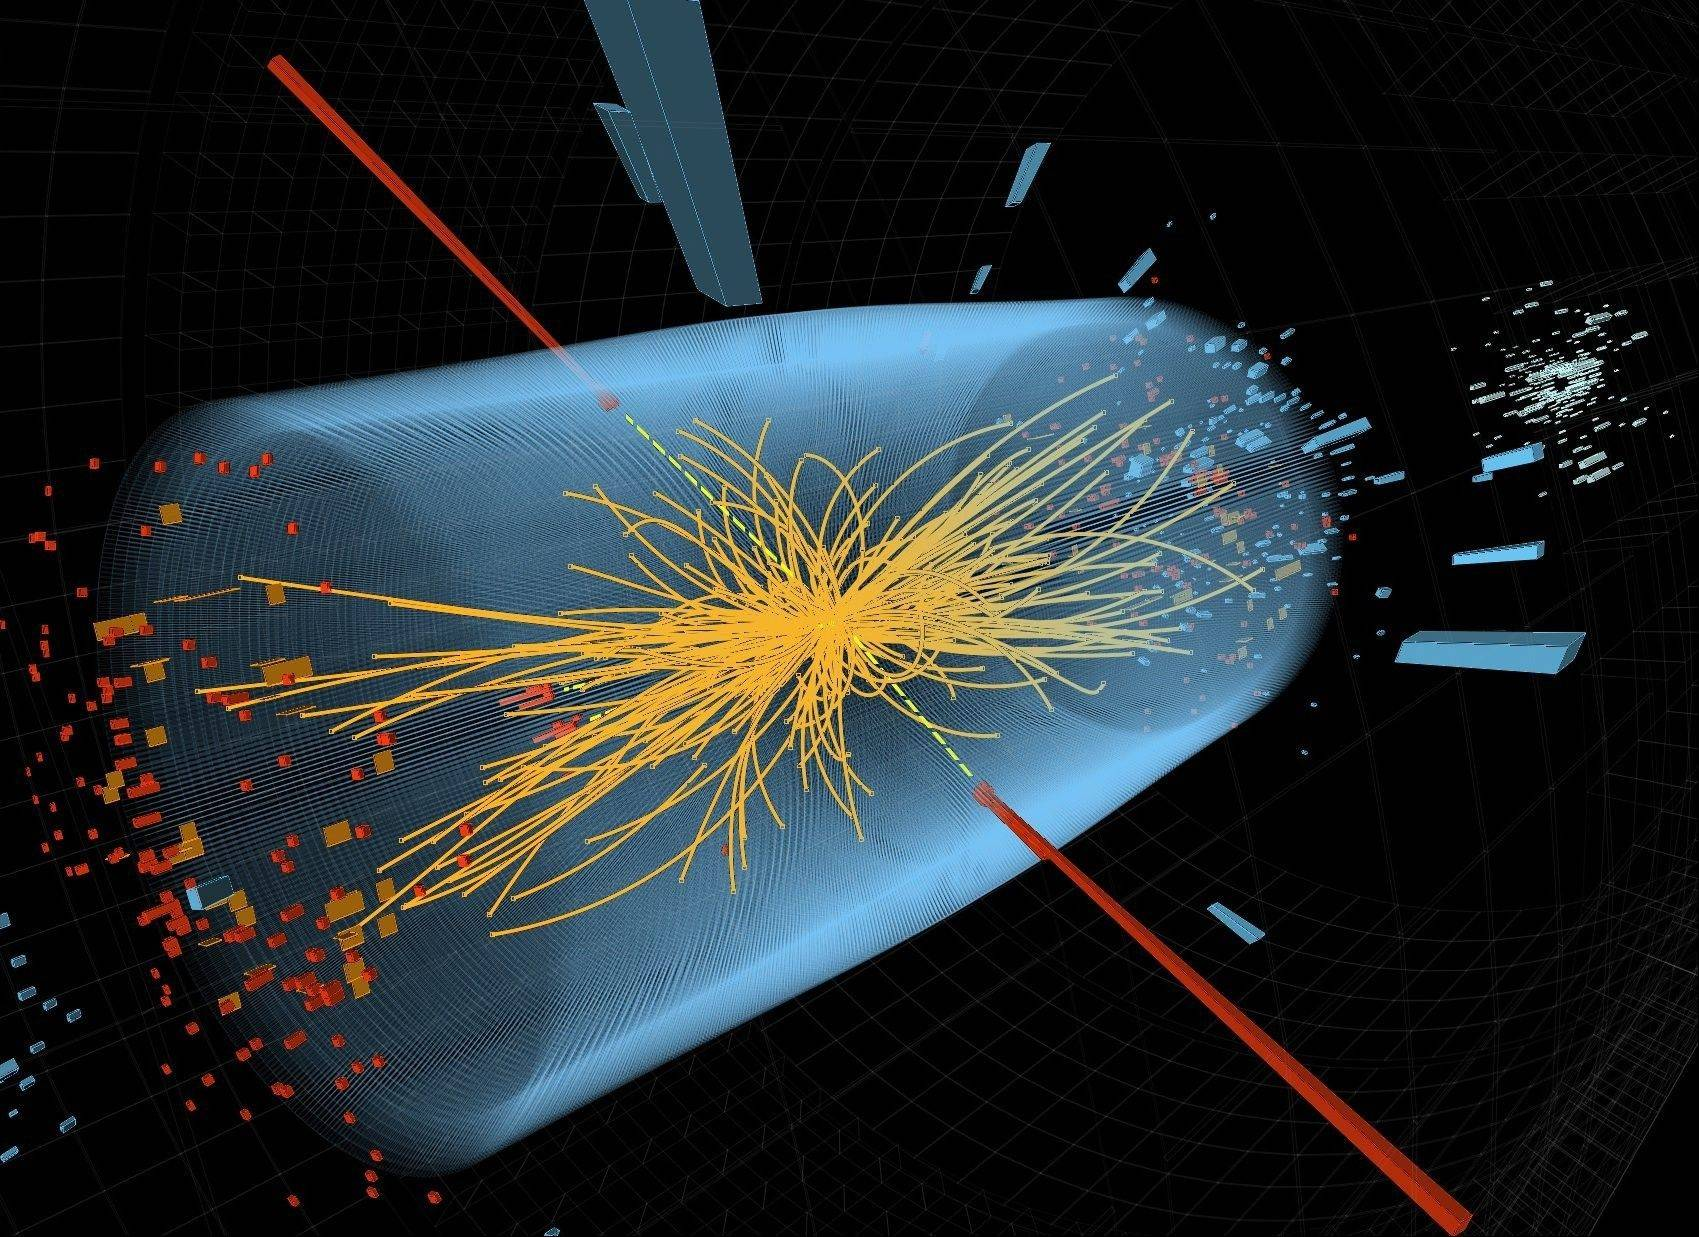 This undated image shows a typical candidate event in the search for the Higgs boson, including two high-energy photons whose energy (depicted by red lines) is measured in the CMS electromagnetic calorimeter. The yellow lines are the measured tracks of other particles produced in the collision.